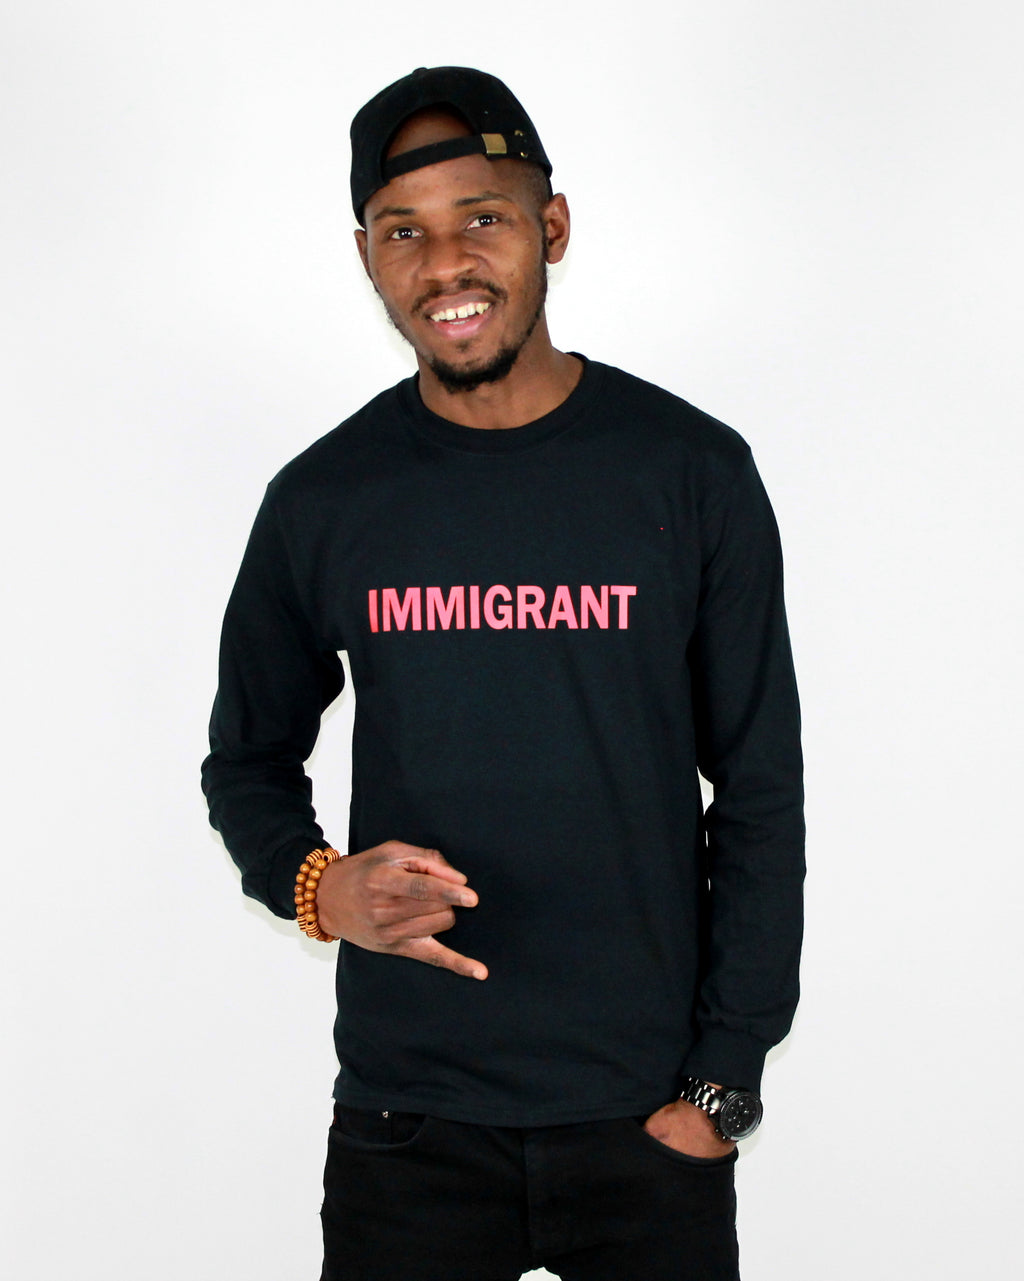 IMMIGRANT Men long sleeves heavy cotton T-shirt black